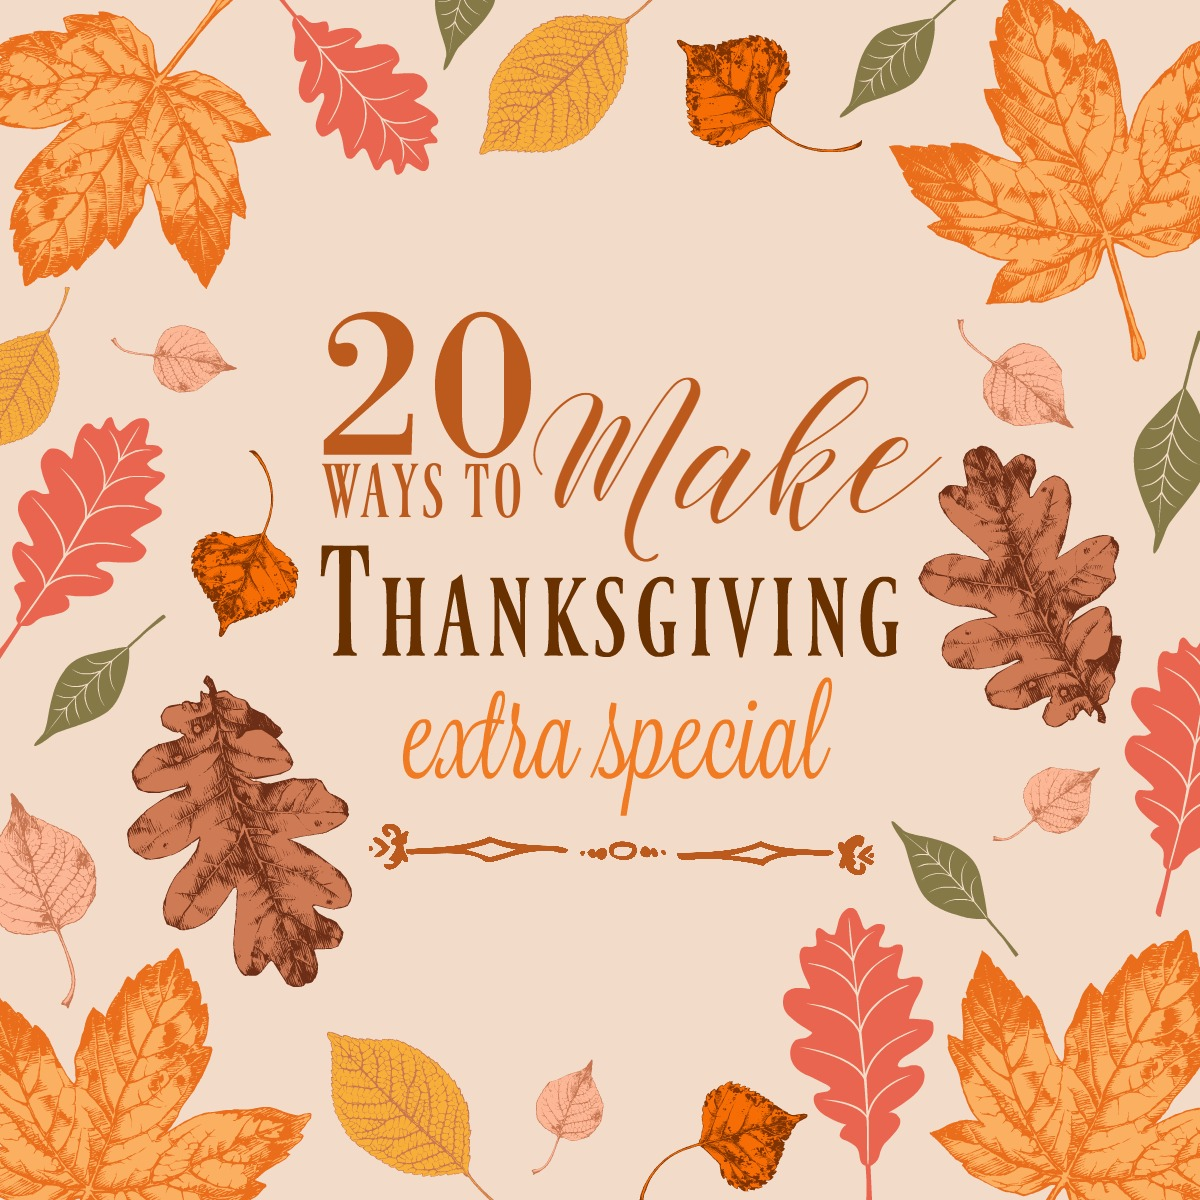 2o-ways-to-make-thanksgiving-extra-special-ideas-for-memorable-holiday-gatherings